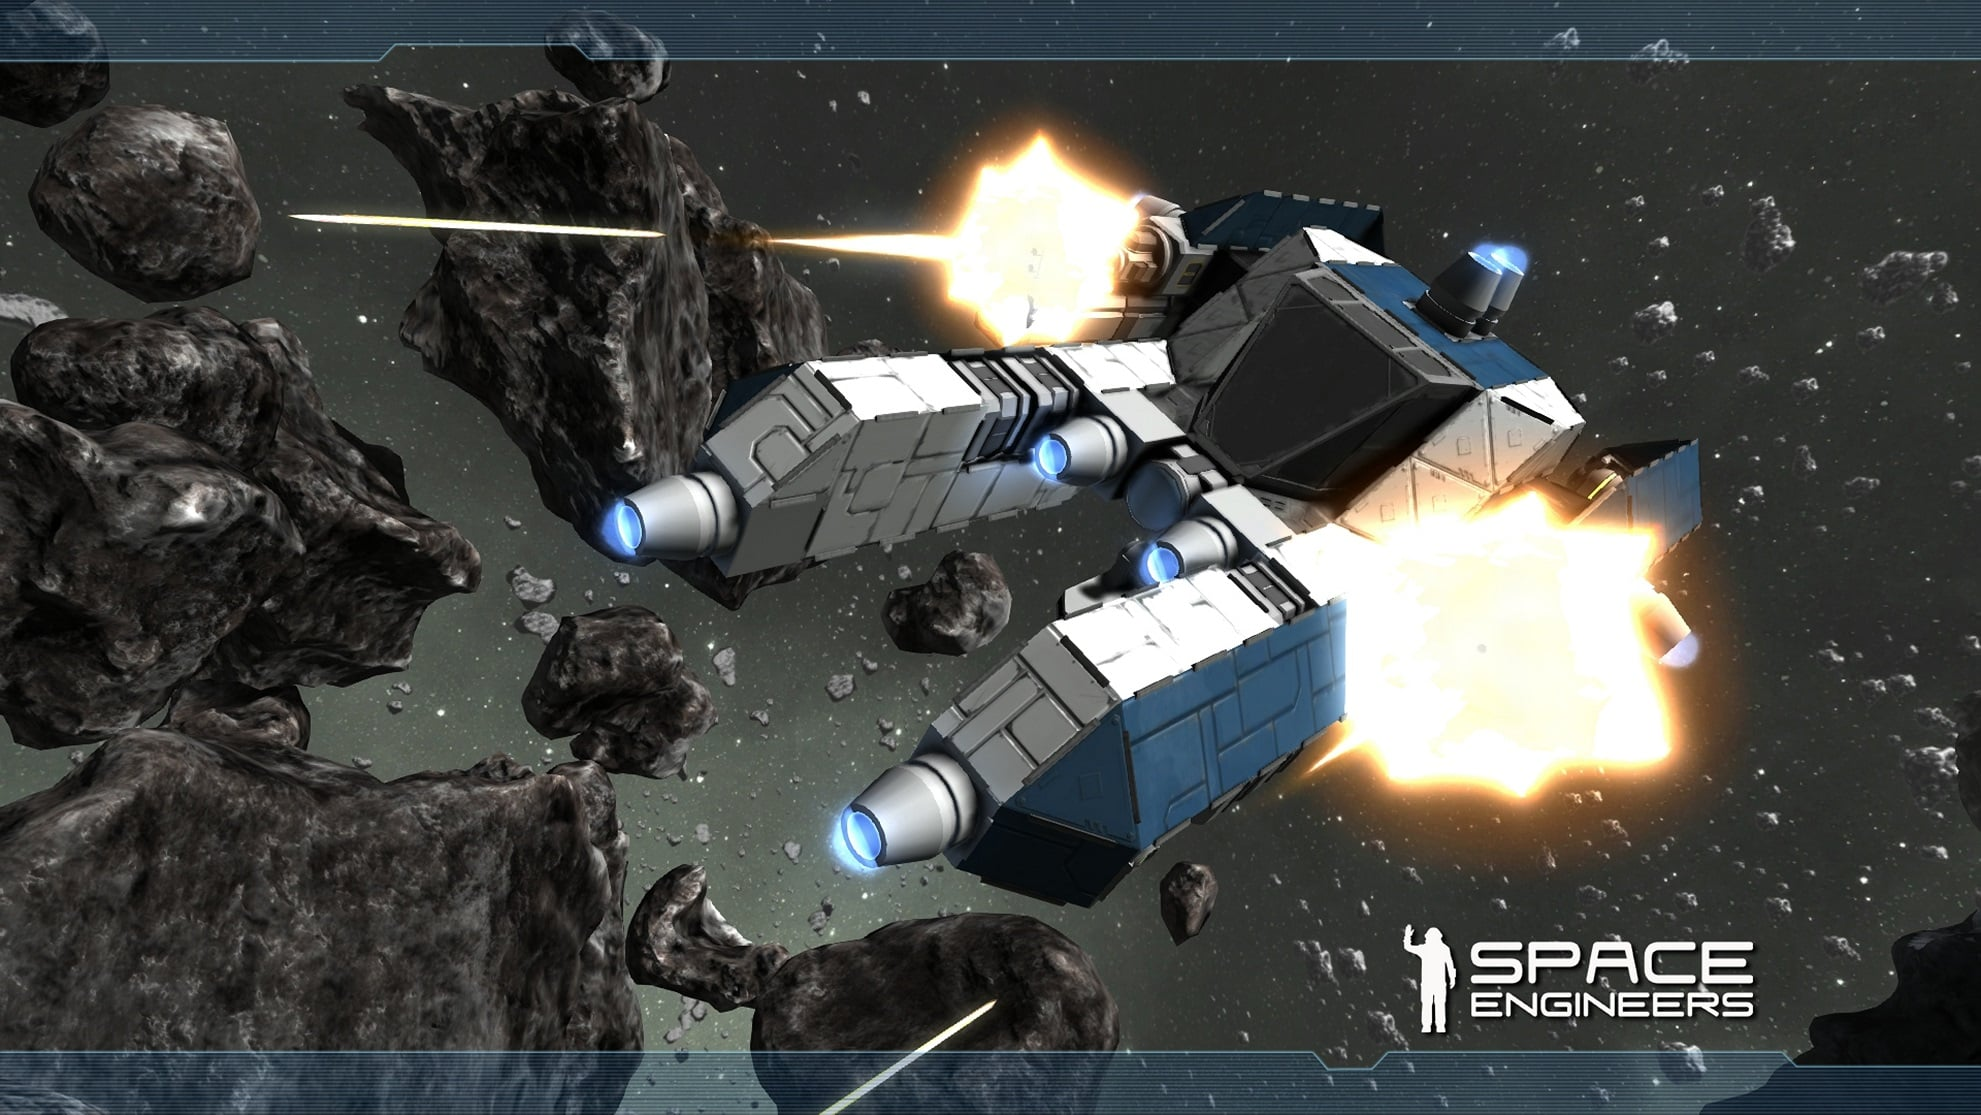 Space Engineers Announced For Xbox One